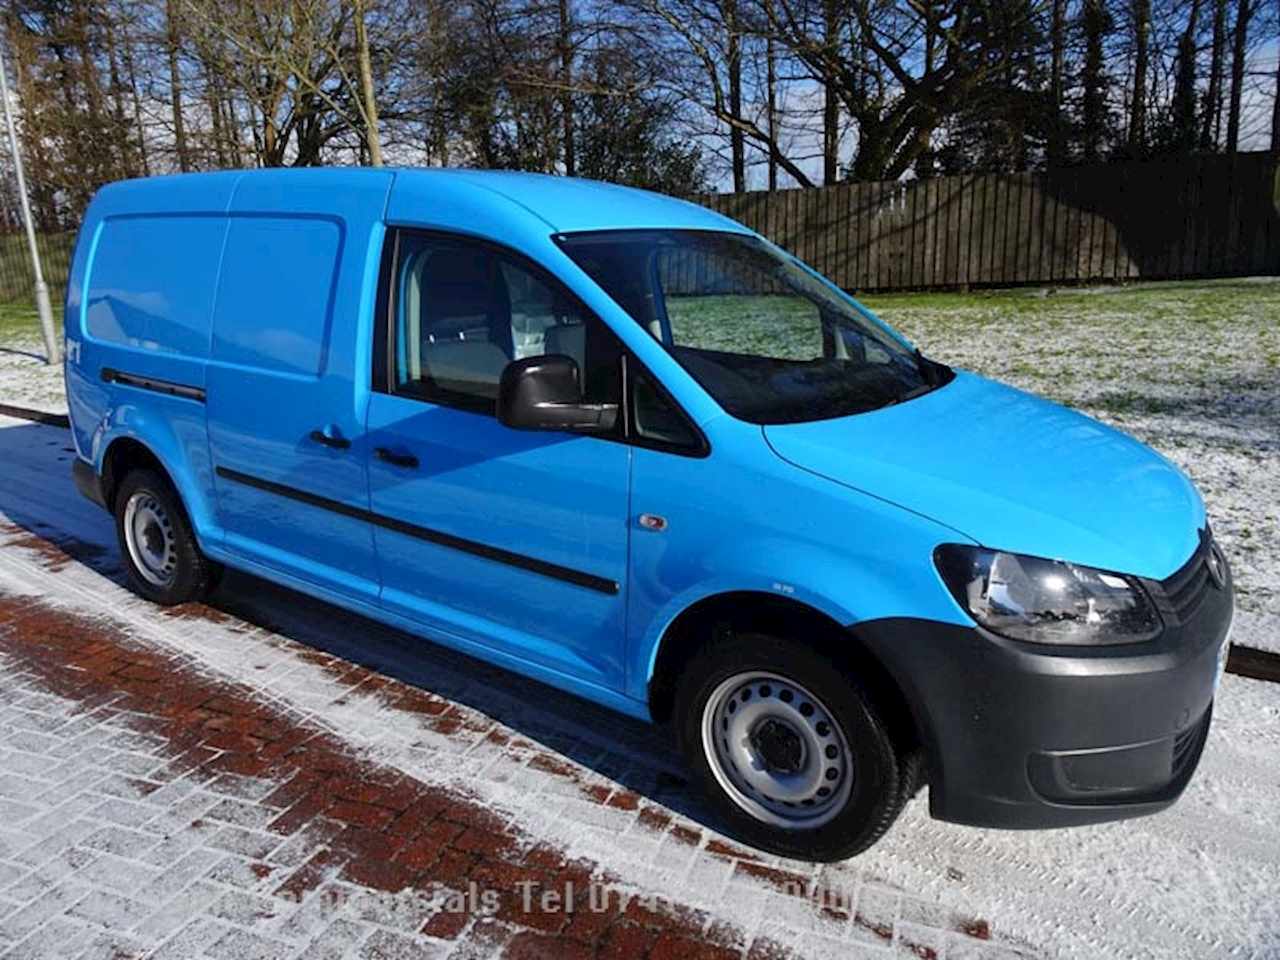 Volkswagen Caddy Maxi TDI C20 Startline (Choice of 2) 1.6 4dr Panel Van Manual Diesel